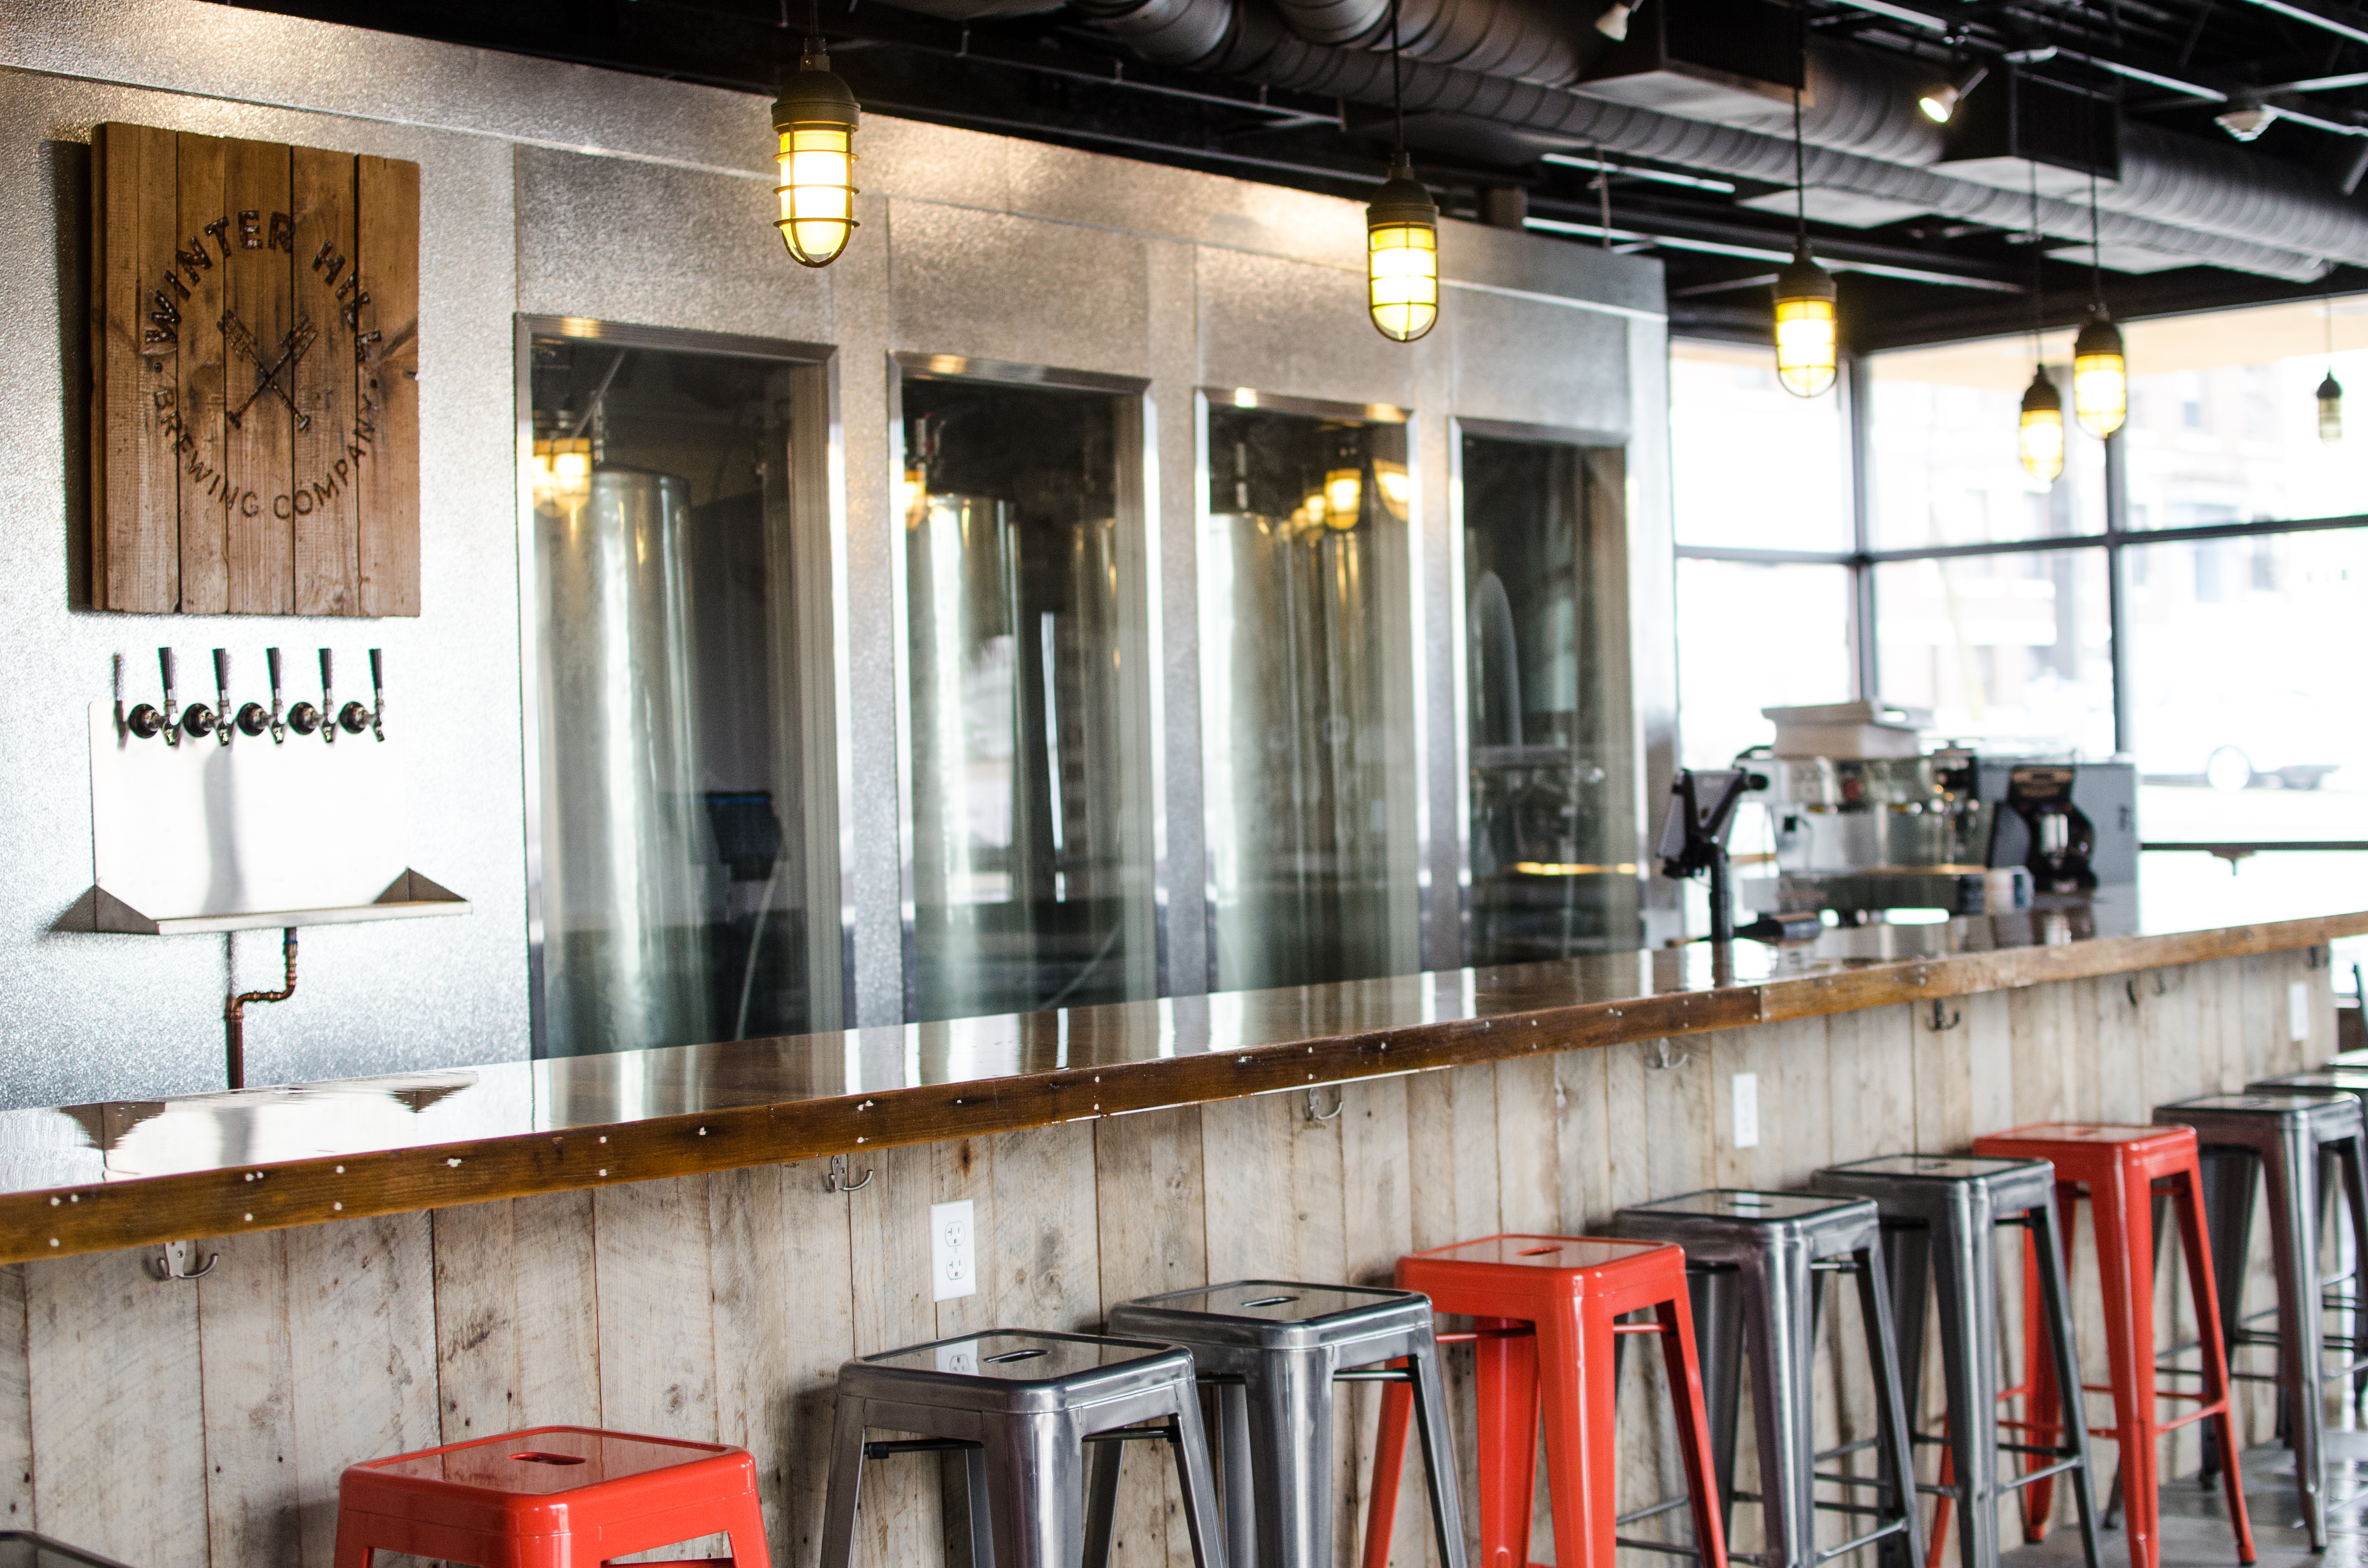 Gray and red backless metal stools line up against a wooden bar with a view of tap handles and brewing tanks